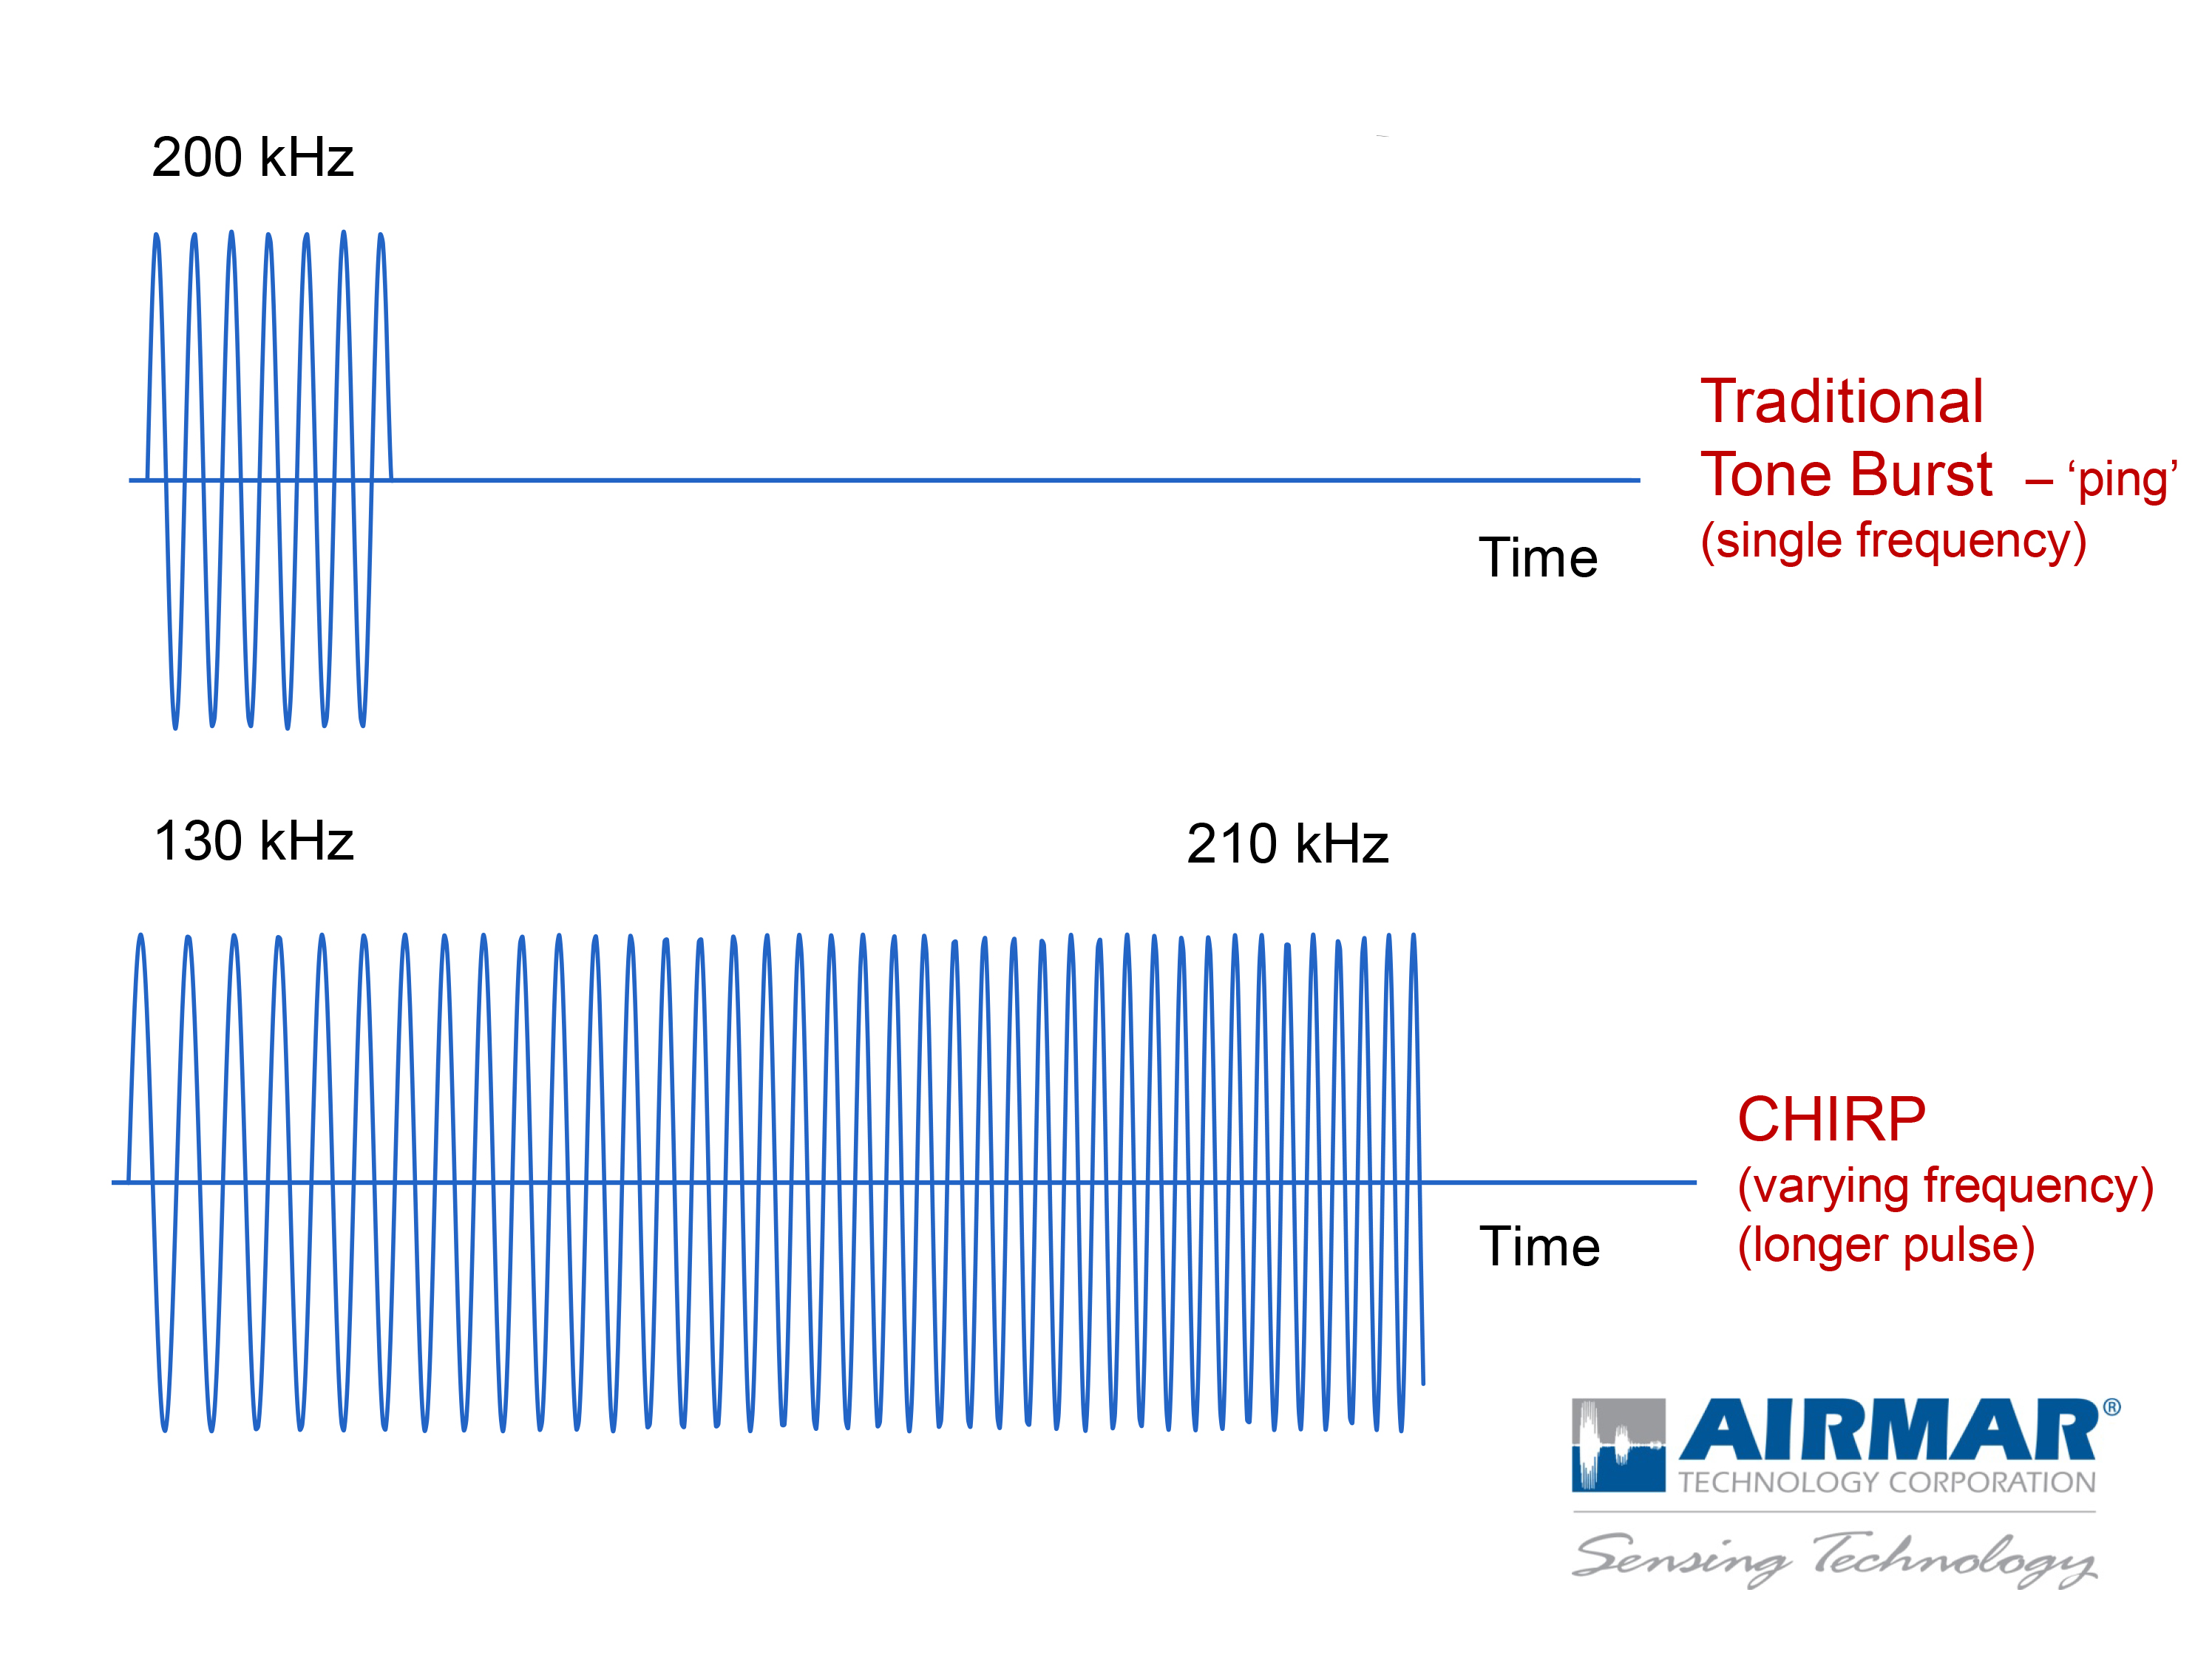 Traditional tone burst frequency vs CHIRP frequency